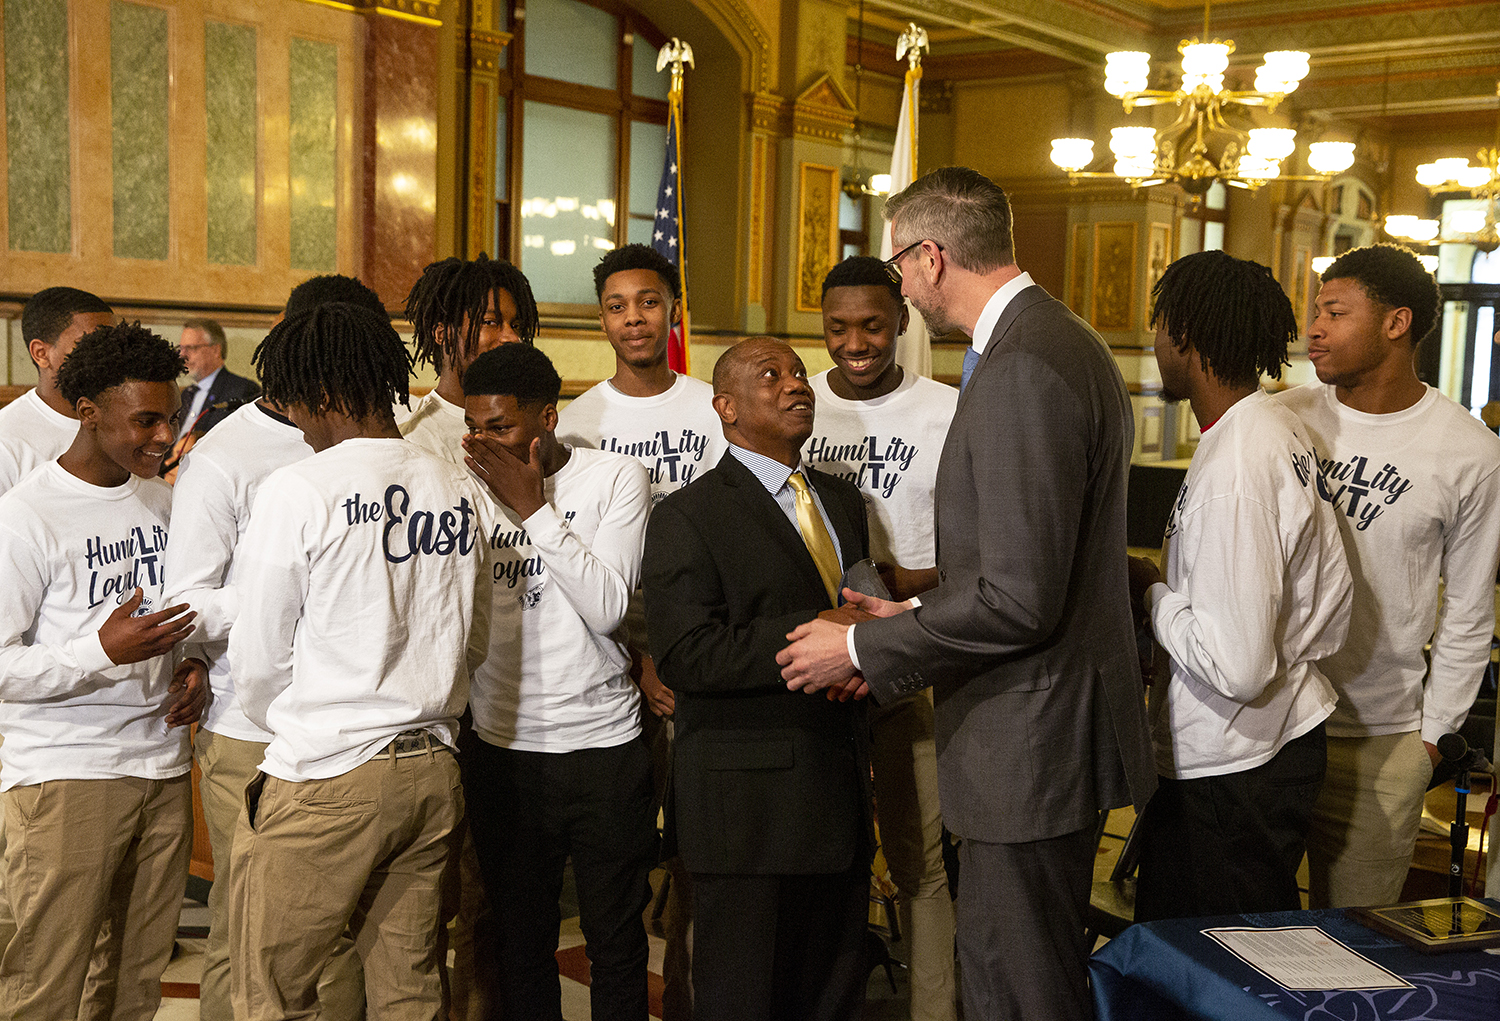 Southeast High School boys basketball coach Lawrence Thomas speaks with State Treasurer Michael Frerichs after Thomas was honored for outstanding achievement in sportsmanship during a ceremony in celebration of Black History Month hosted by the treasurer Wednesday, Feb. 6, 2019 at the Capitol in Springfield, Ill. Thomas is surrounded by the Southeast basketball team. Seven African Americans from across the state were recognized for outstanding achievements, including Deanna Blackwell, director of Student Support Services at Lincoln Land Community College. [Rich Saal/The State Journal-Register]